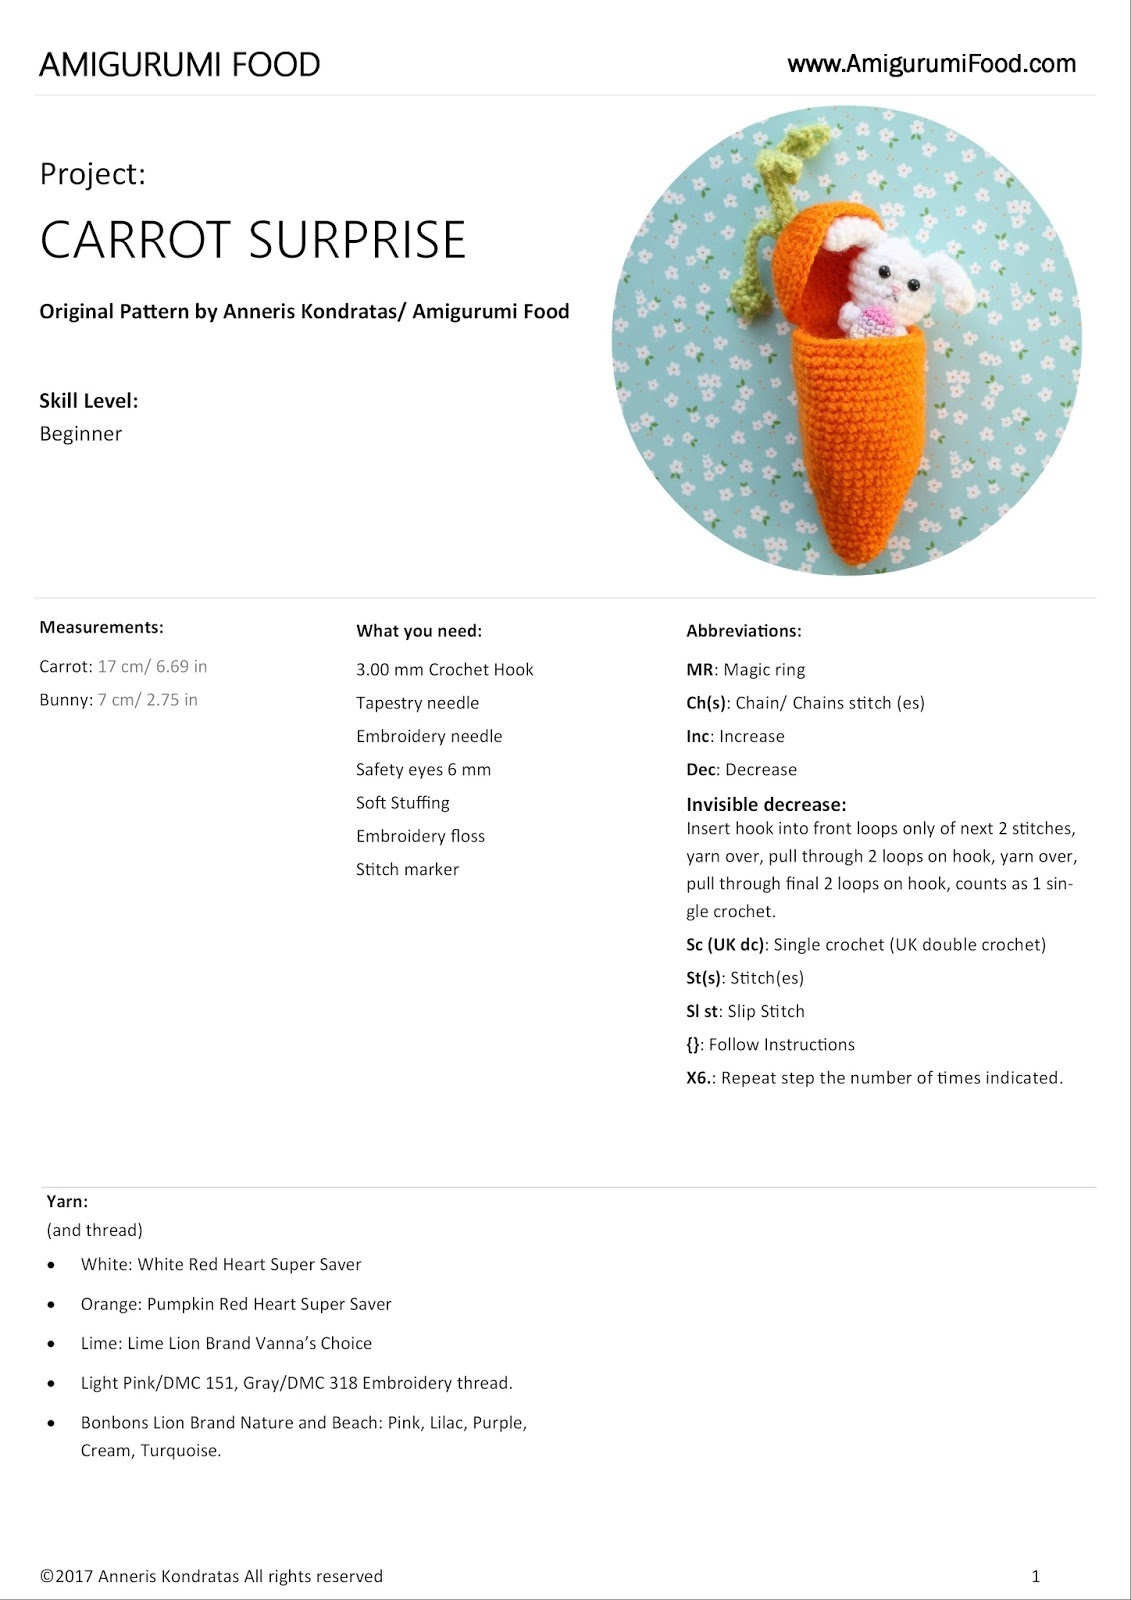 Carrot Surprise Easter Bunny Free Crochet Pattern